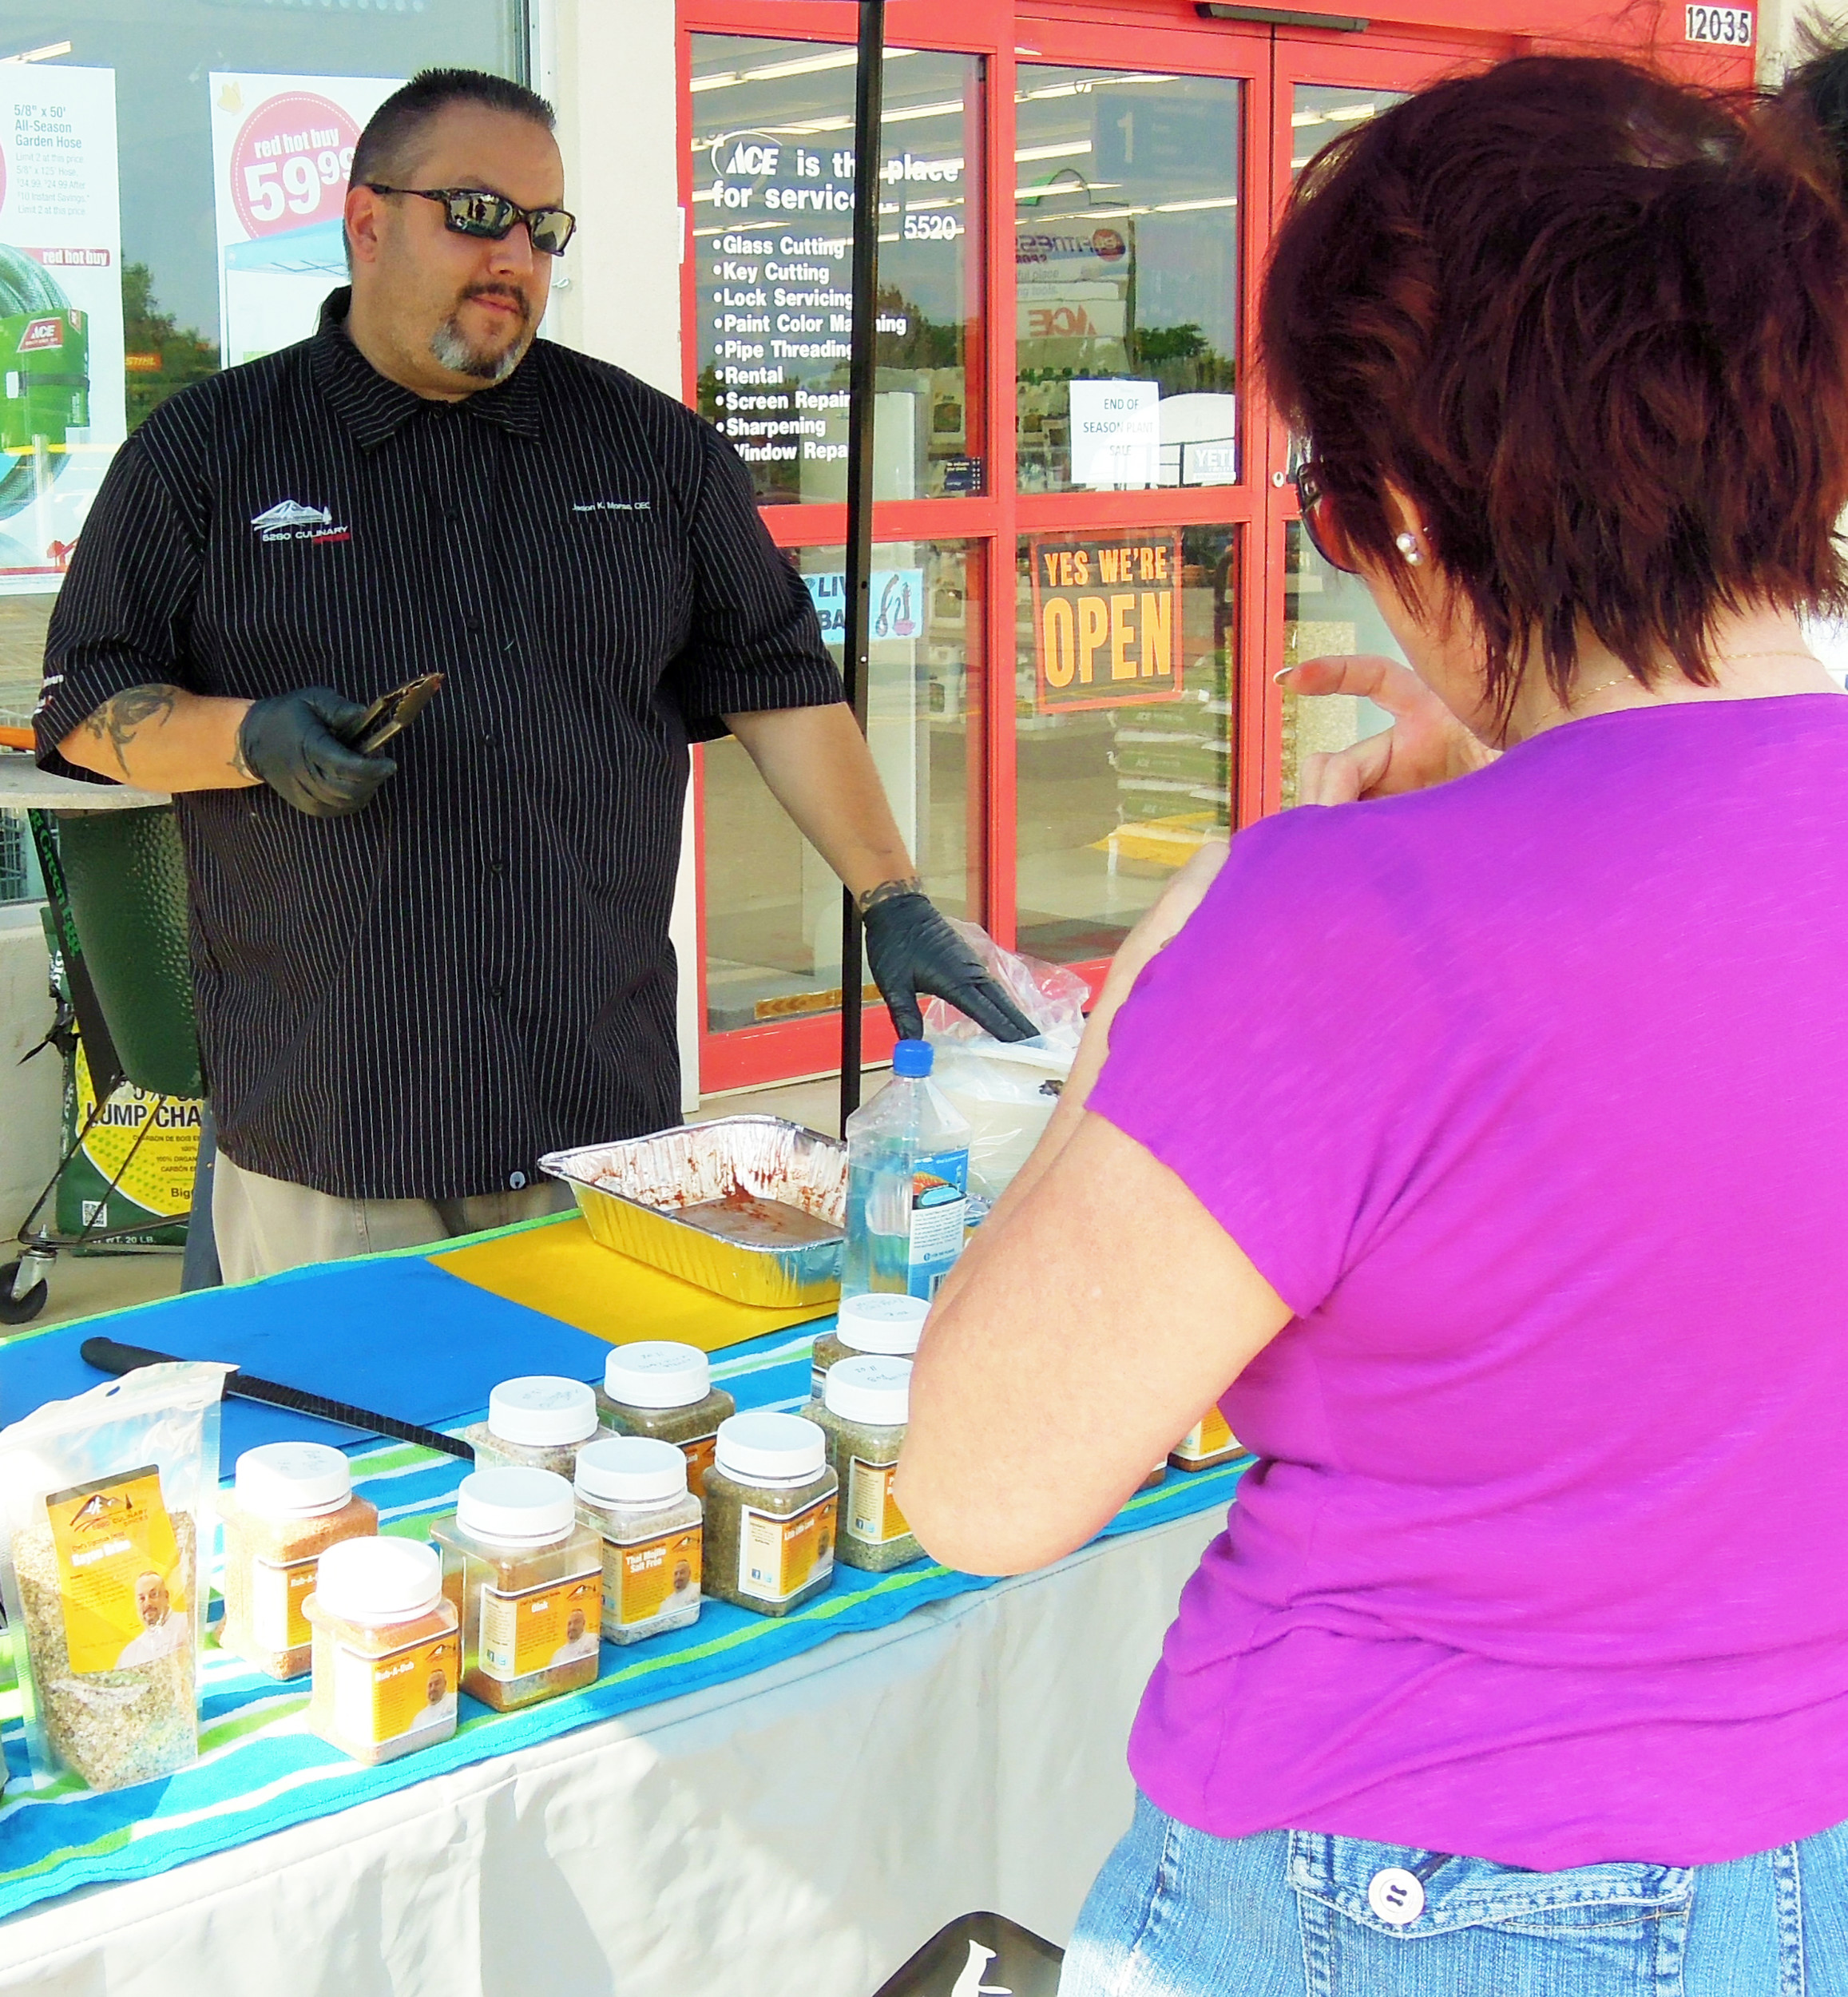 Douglas County School District Executive Chef Jason Morse shared chicken seasoned with his spice mixes with customers, among them Annie Schell, at the Green Mountain Ace Hardware July 8.